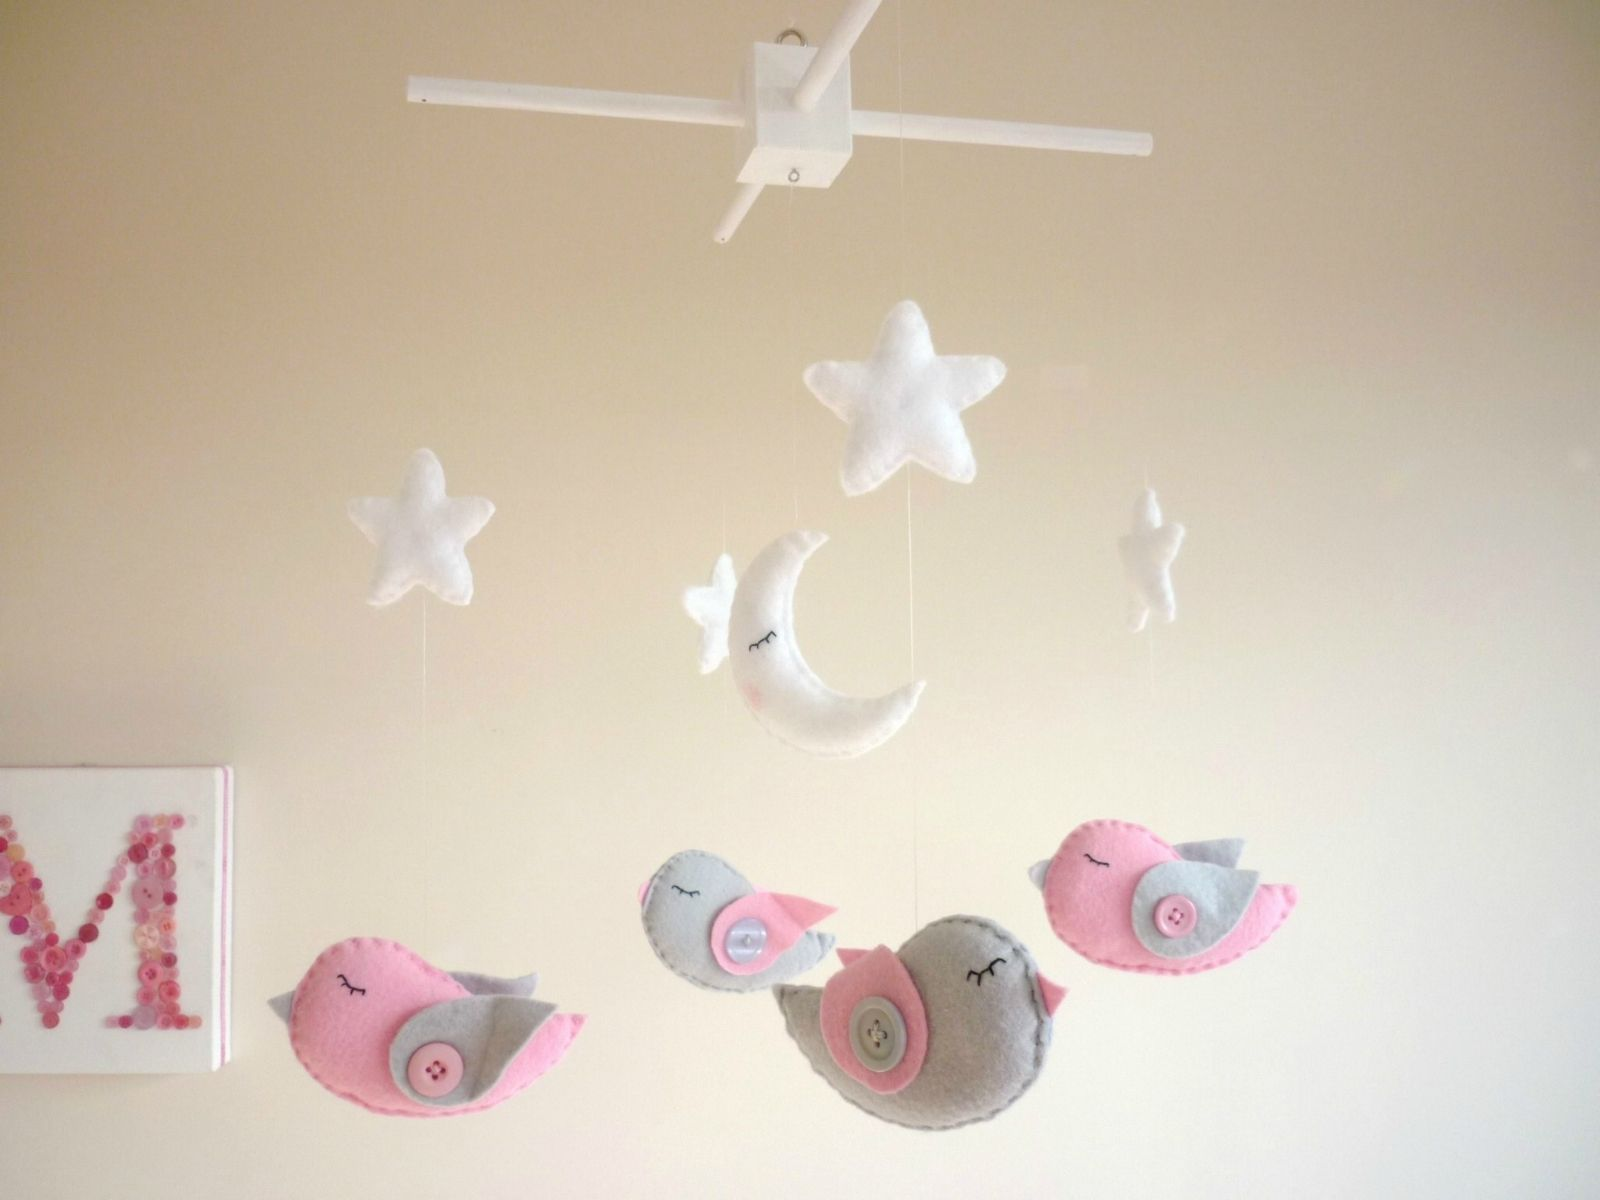 dreamtime baby birds  pink and grey baby mobile  cot mobile  - dreamtime baby birds  pink and grey baby mobile  cot mobile